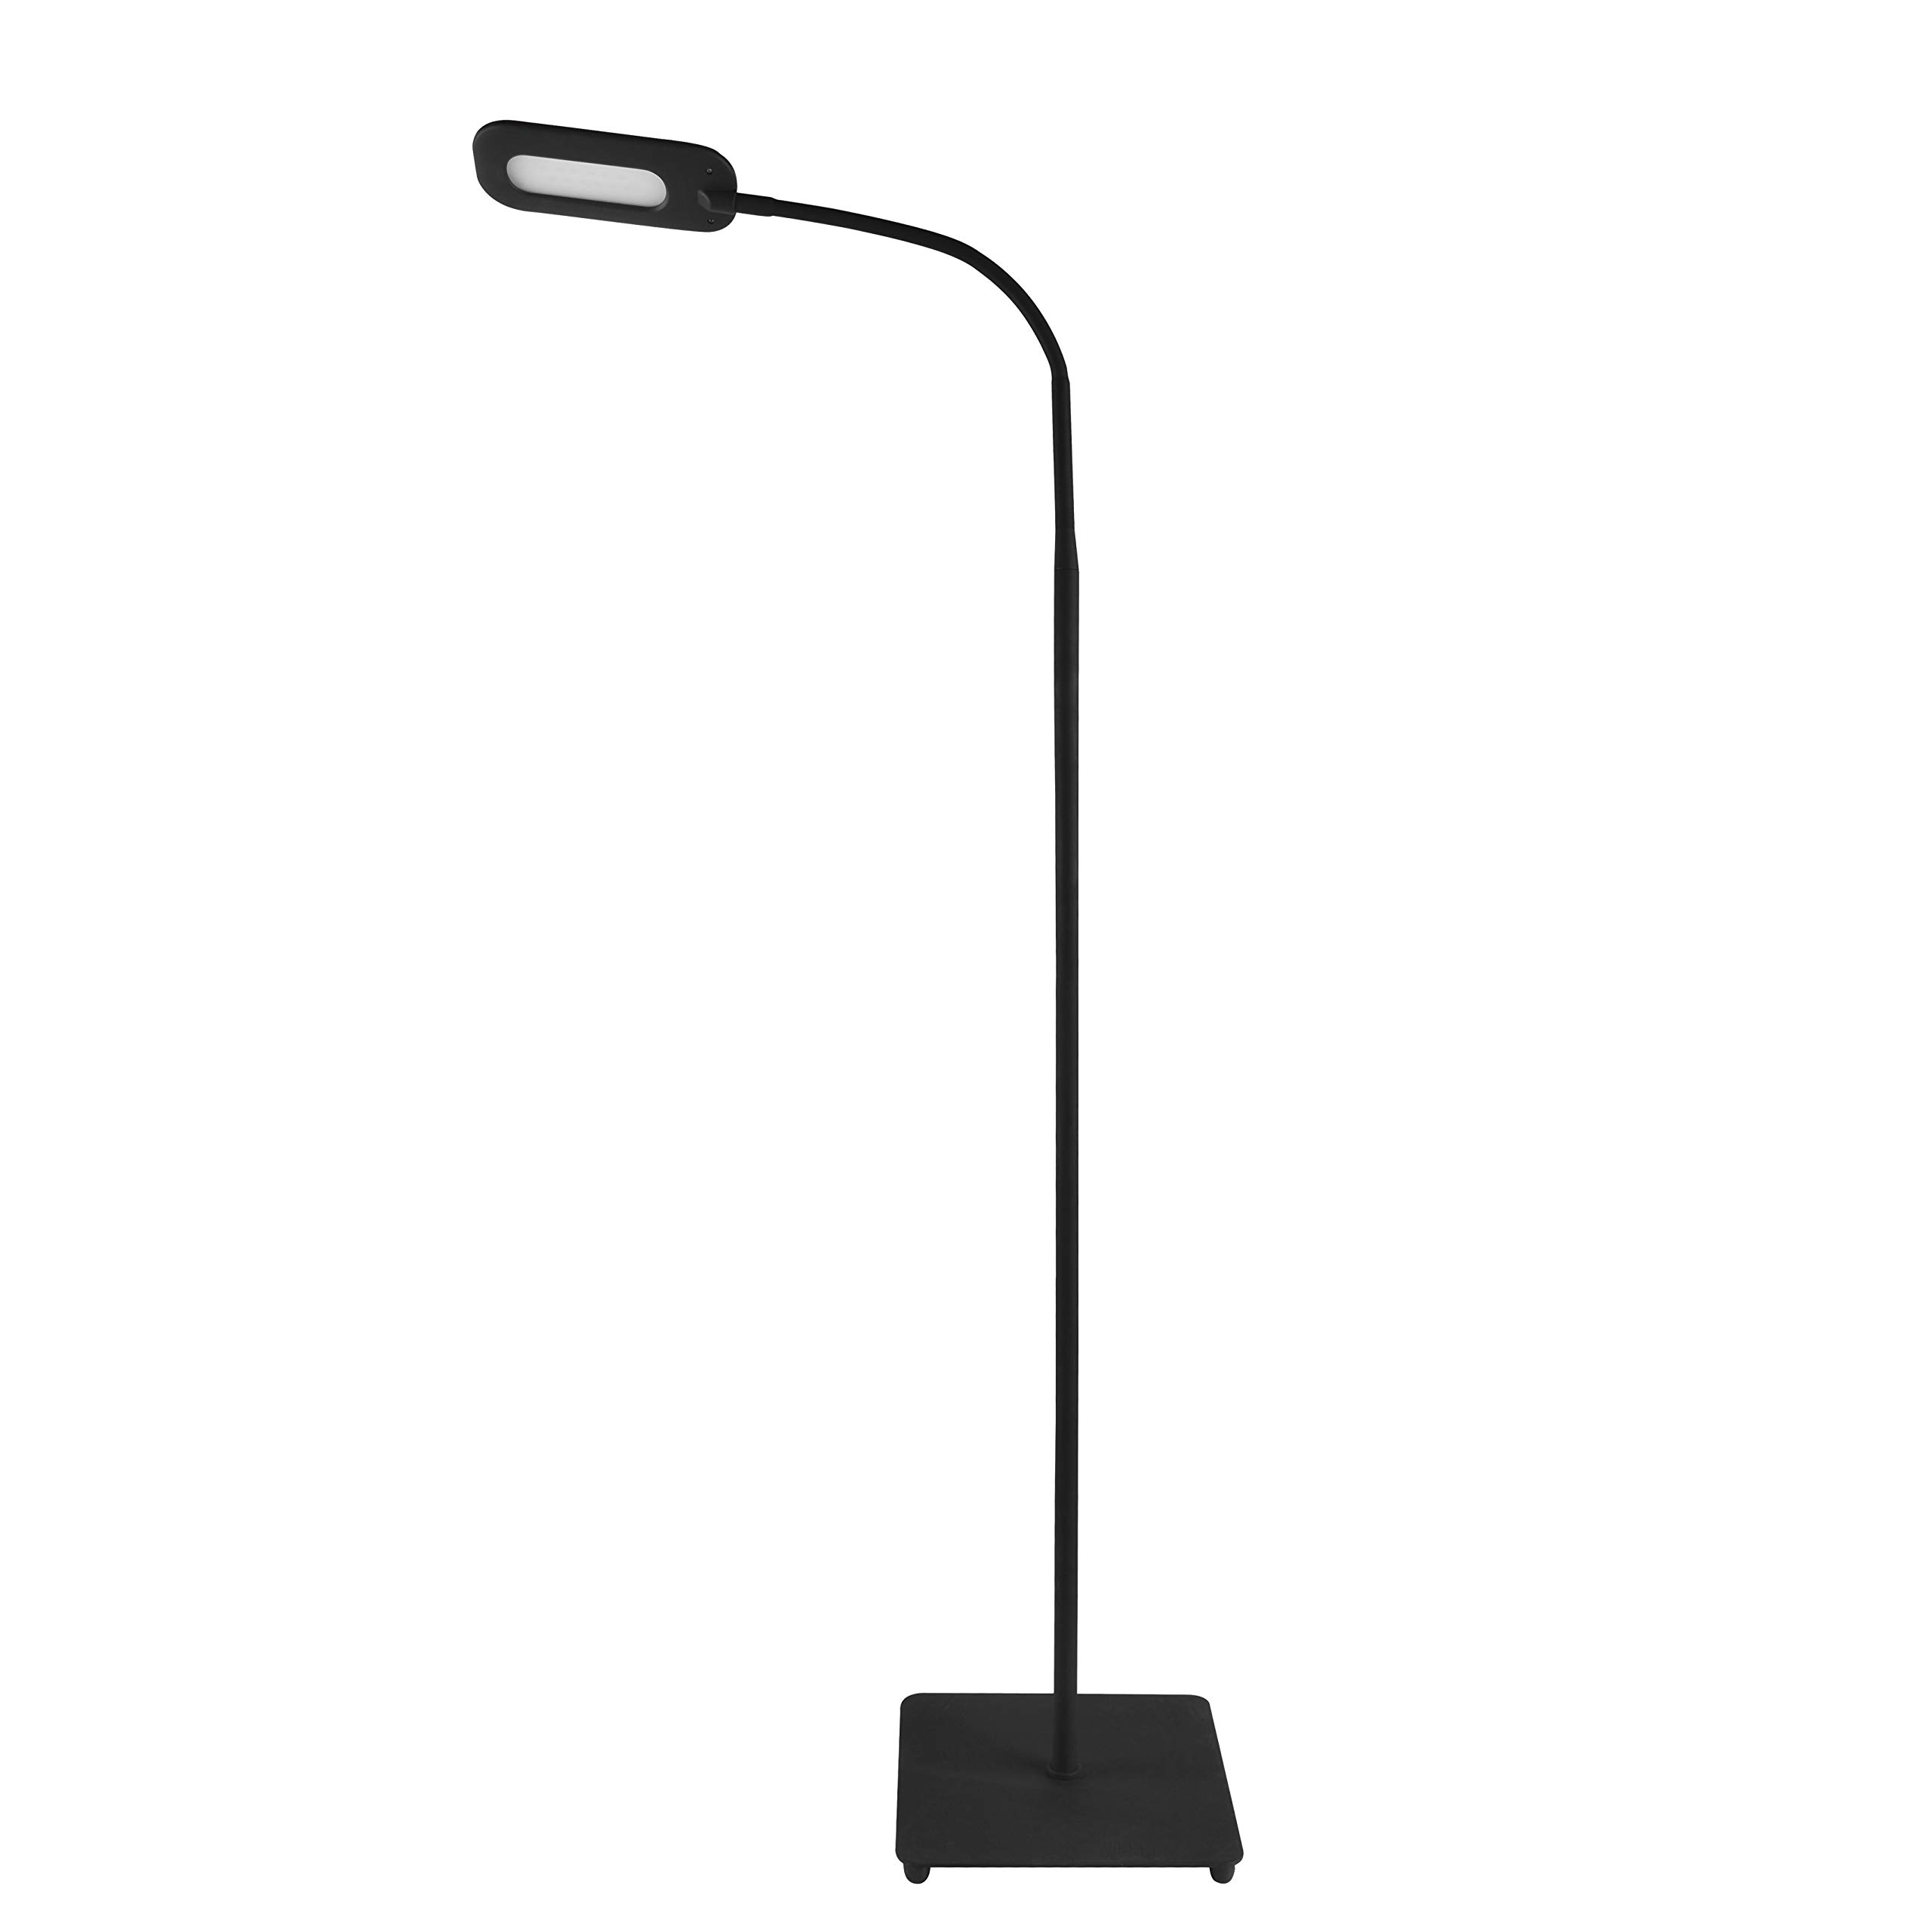 Trae KIYO LED Floor Lamp for Reading - Dimmable Adjustable Gooseneck Standing Lamp, Touch Control 3 Brightness Dimmer Levels, Memory Function Flexible Torchiere Floor Light for Living Room, Bedroom